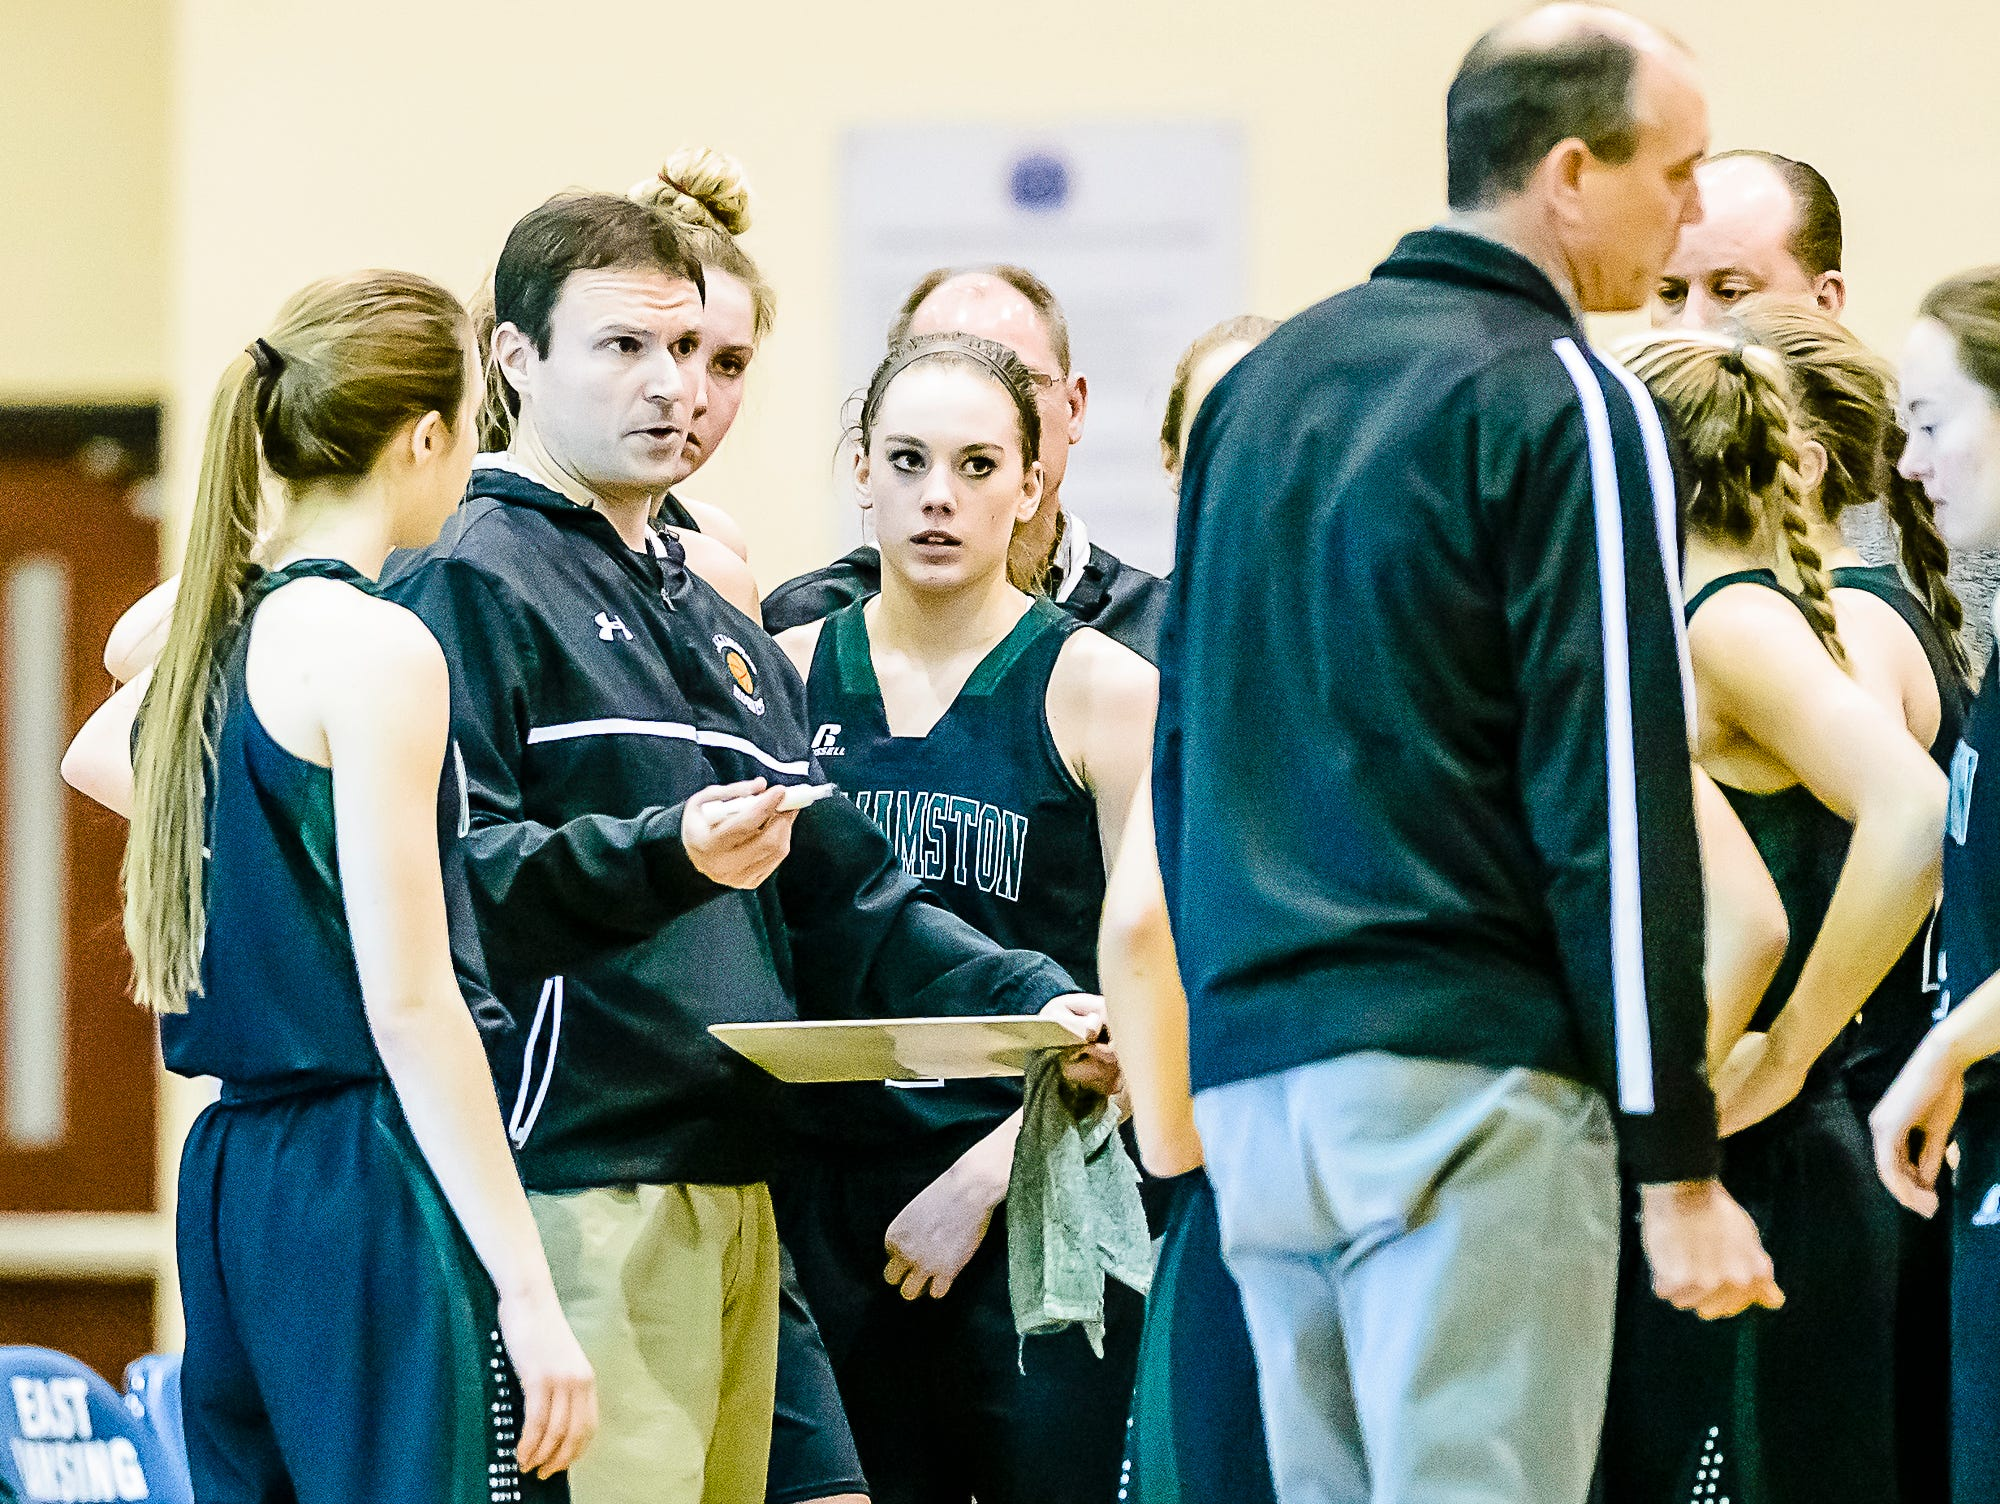 Williamston coach Pete Cool ,left, speaks to his team in a timeout during a game last month. The Williamston girls basketball program has had a consistent amount of success under Cool over the last several seasons.